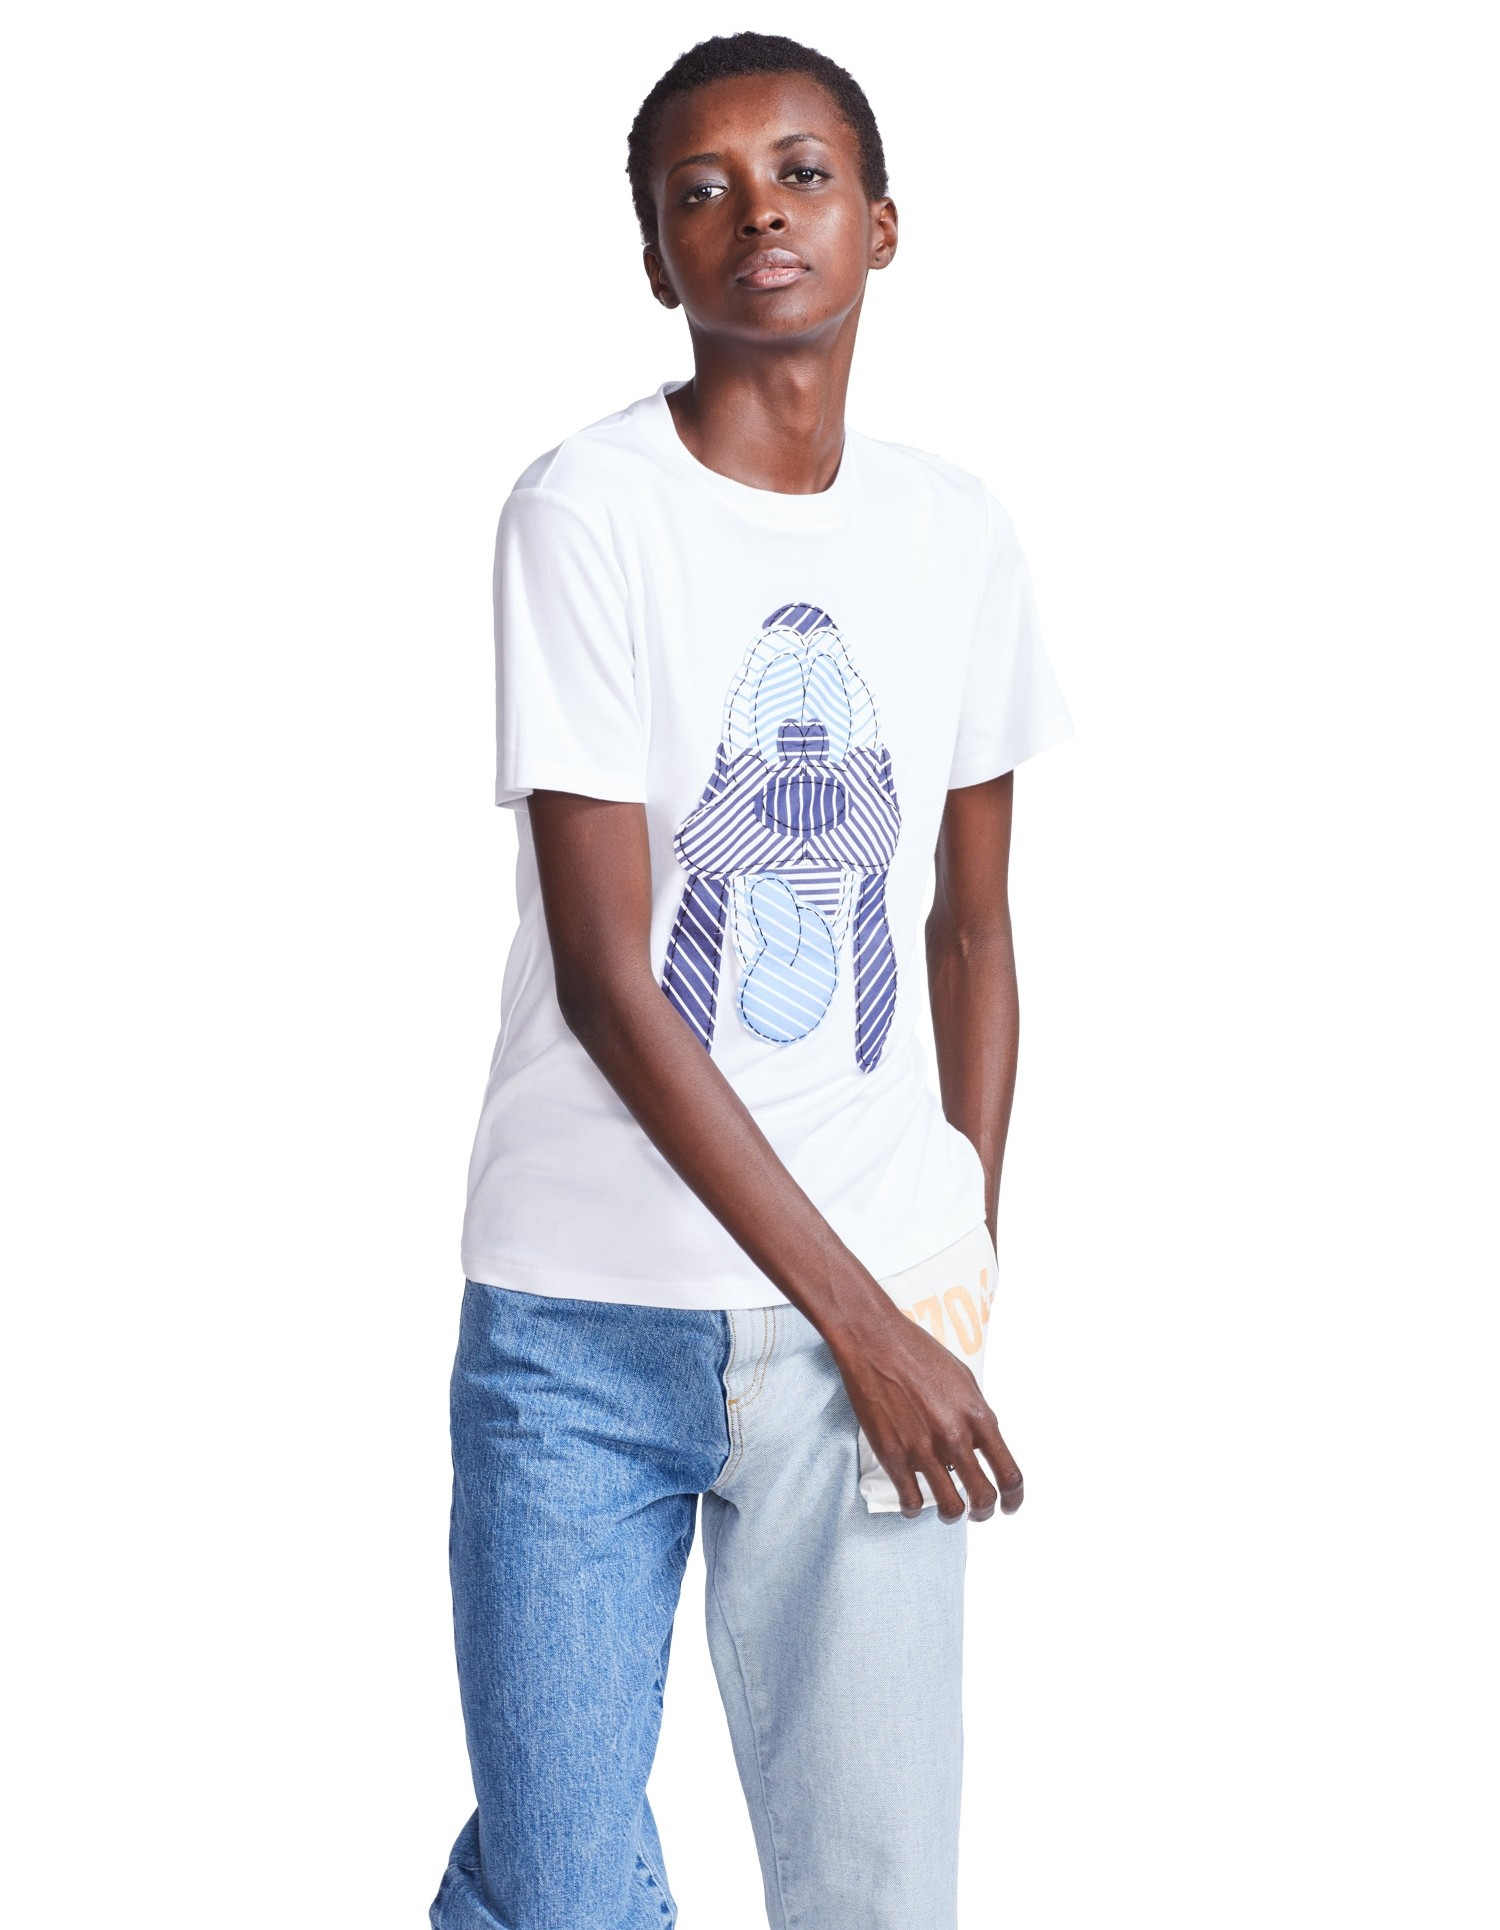 MONSE Pluto Embroidery Tee on Model Front